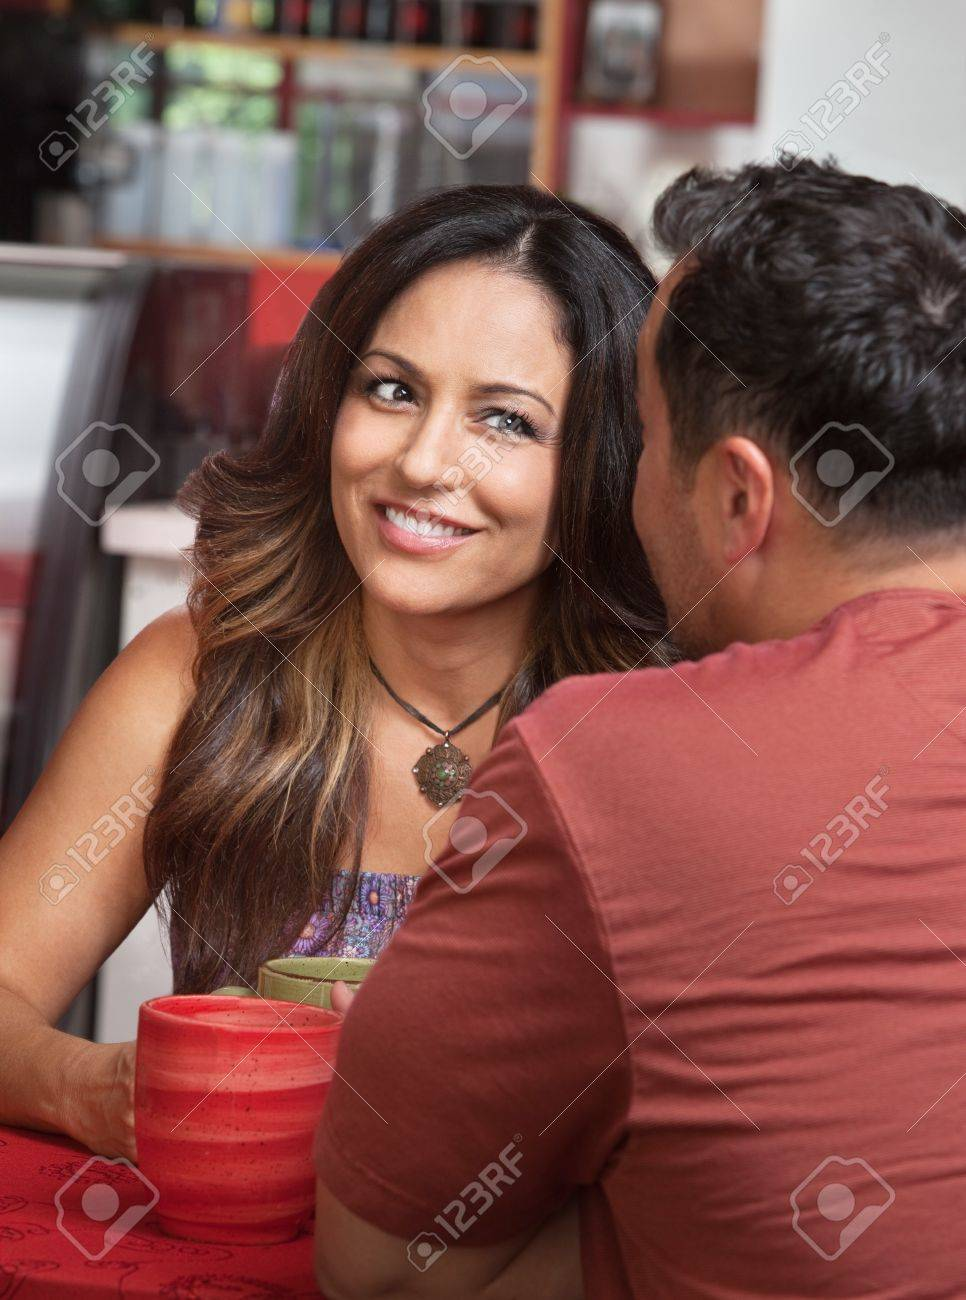 Skeptical Hispanic woman listening to man talk in cafe Stock Photo - 17019823